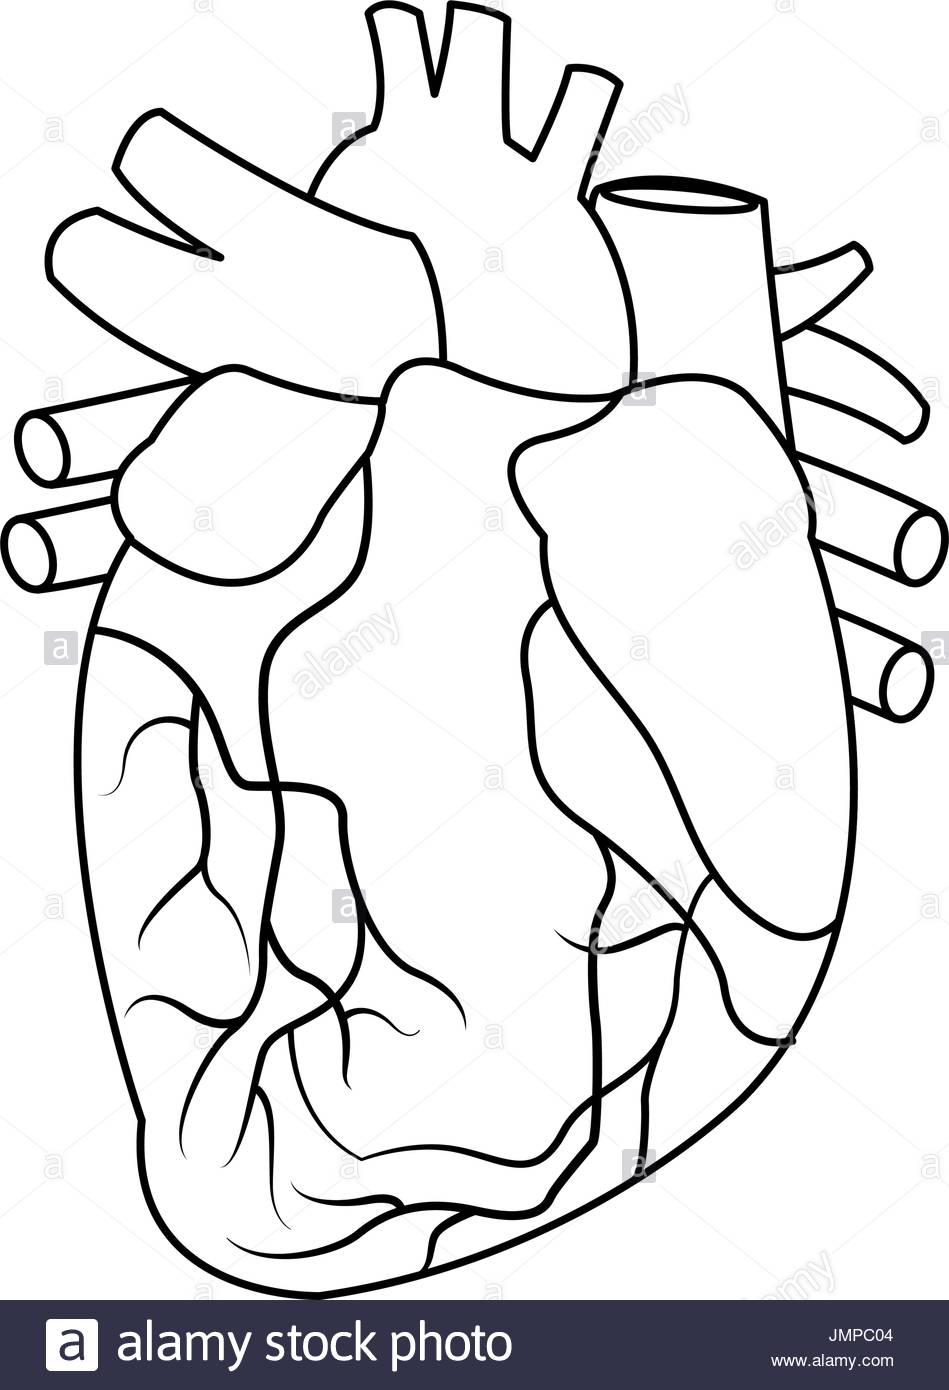 949x1390 Human Heart Black And White Stock Photos Amp Images